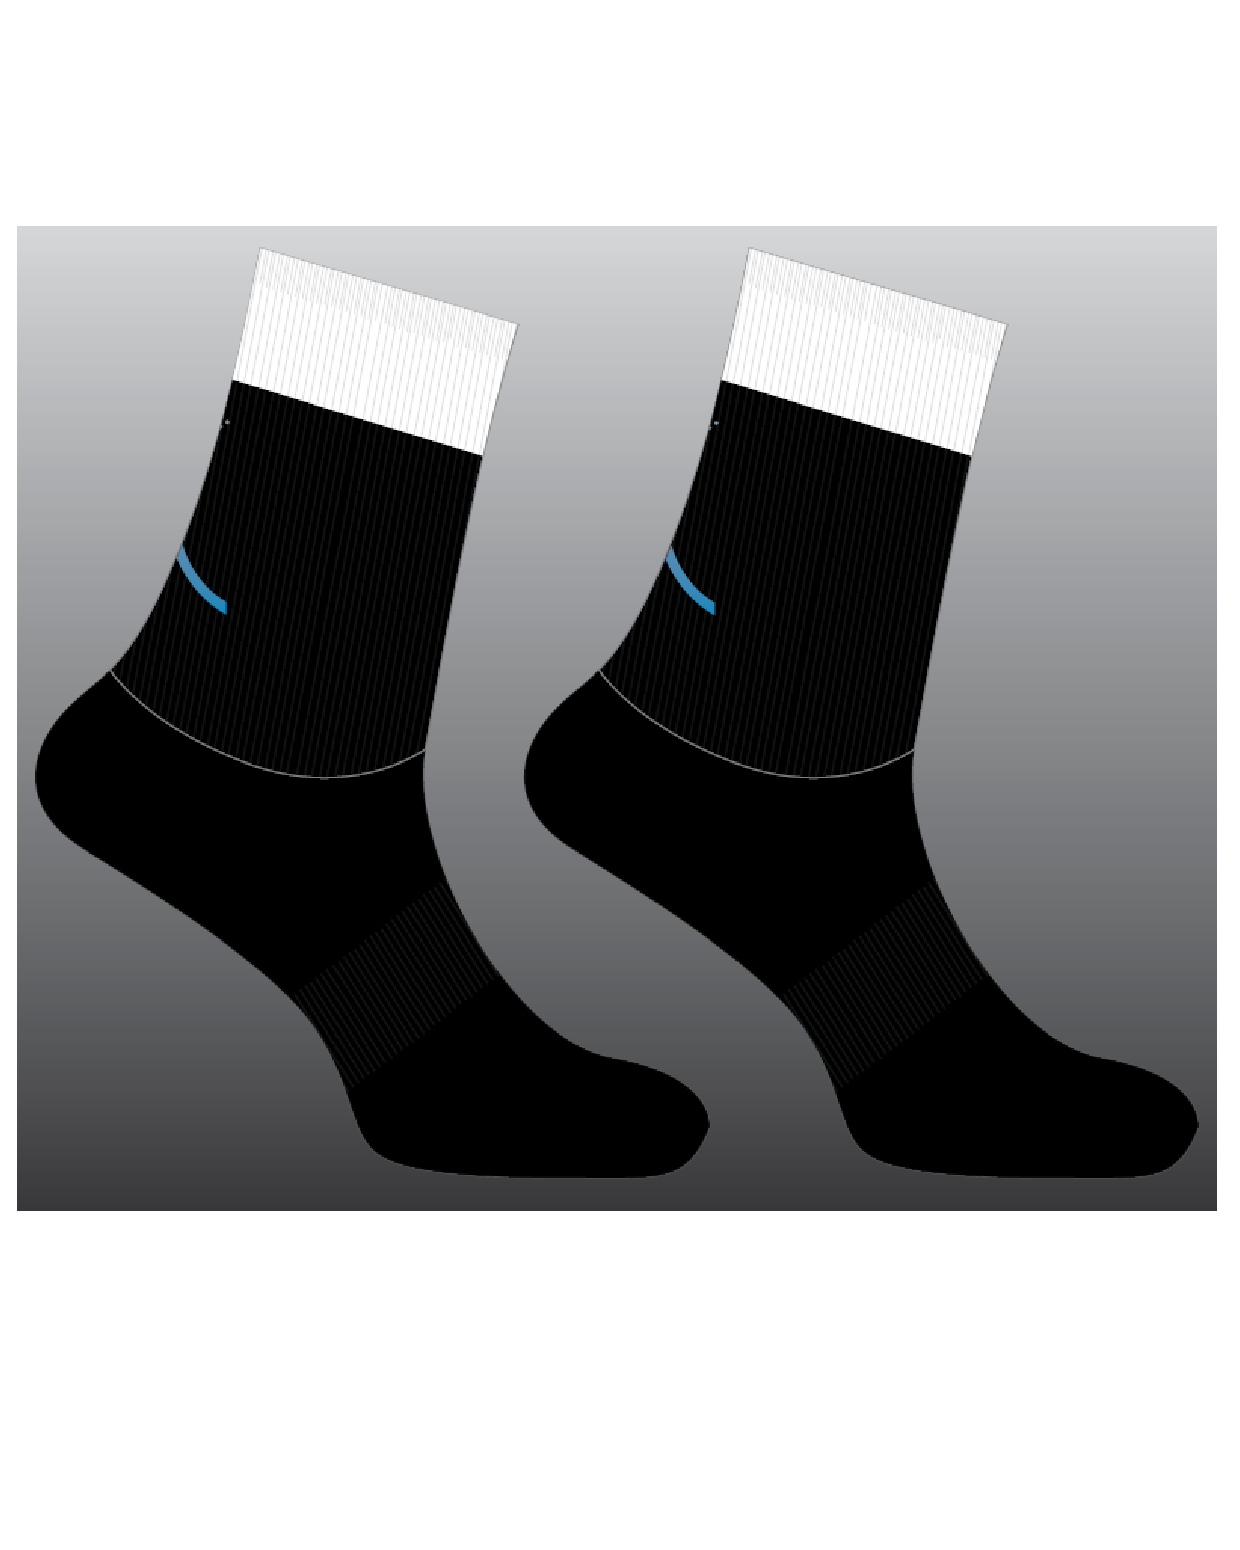 TCF Socks Black and White